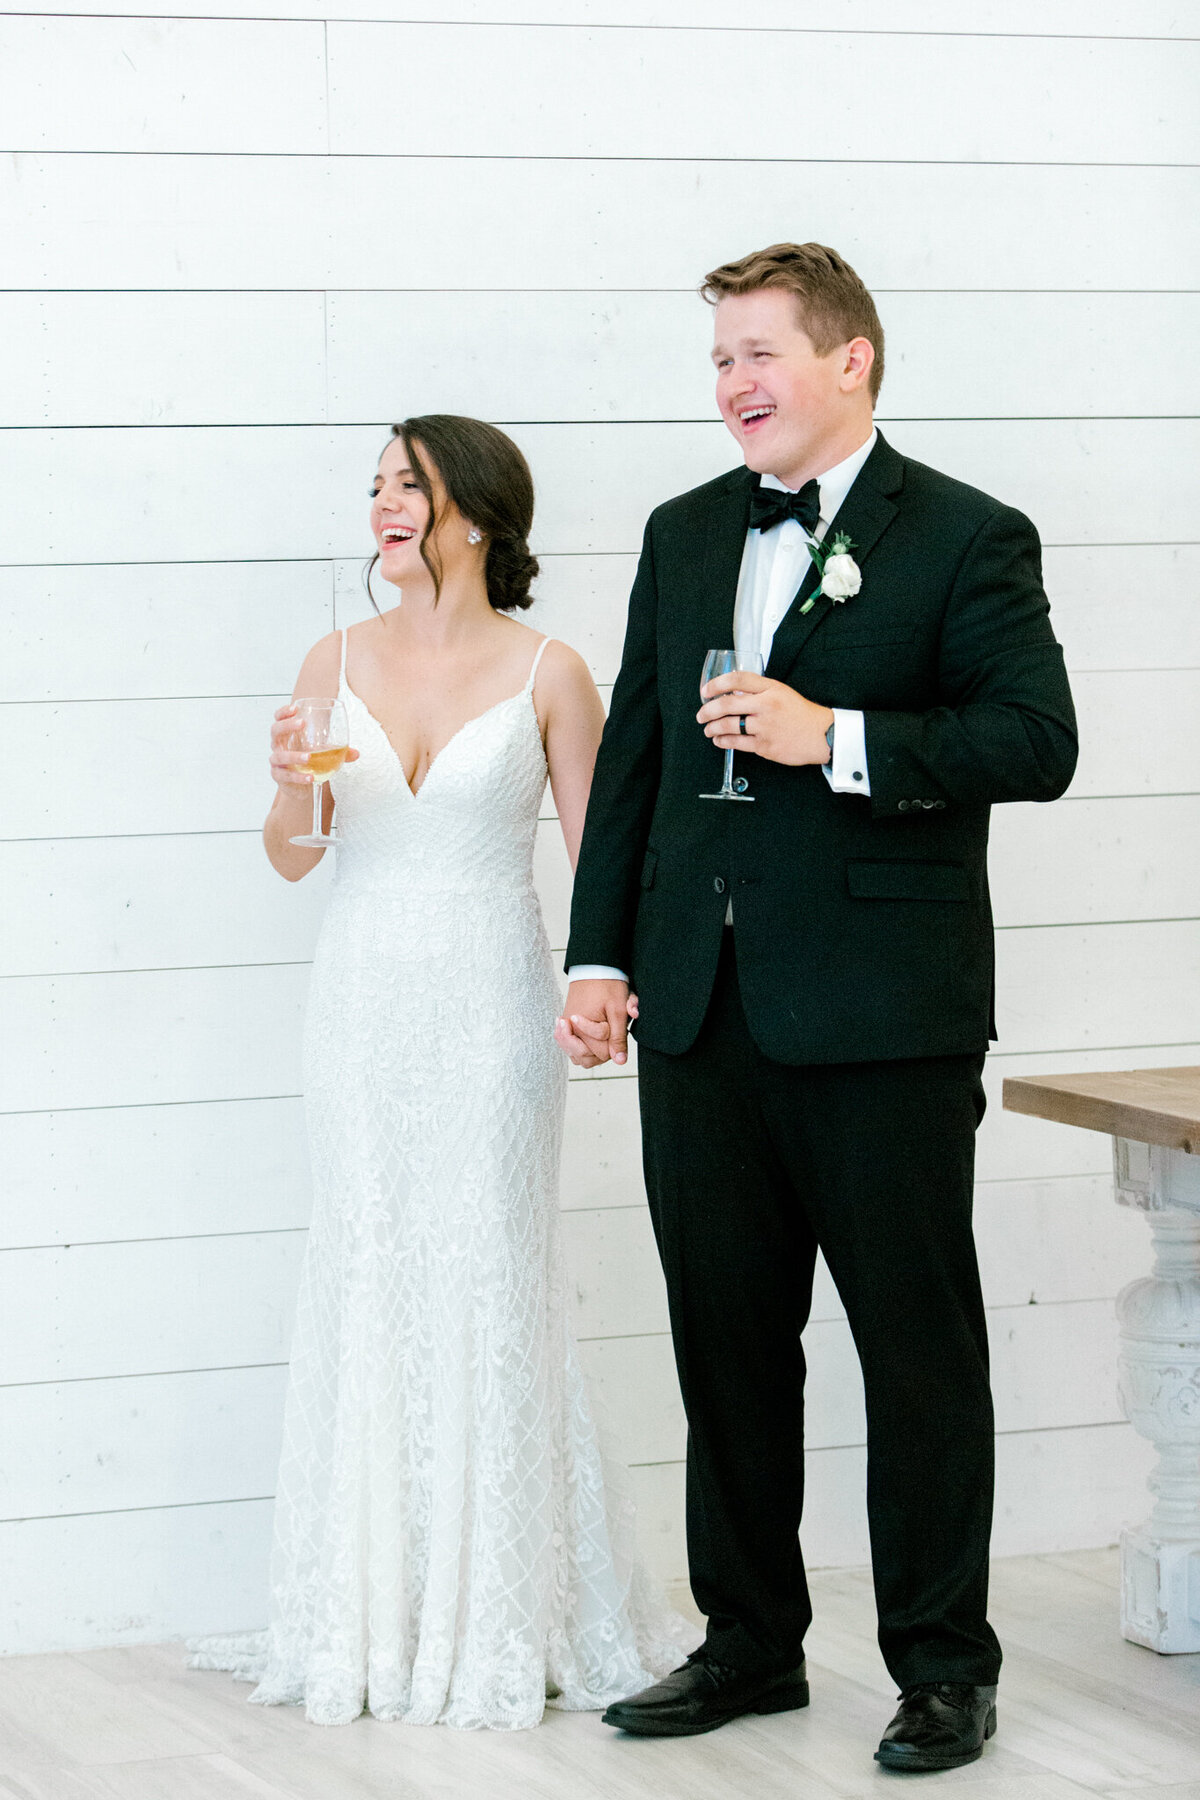 Anna & Billy's Wedding at The Nest at Ruth Farms | Dallas Wedding Photographer | Sami Kathryn Photography-207